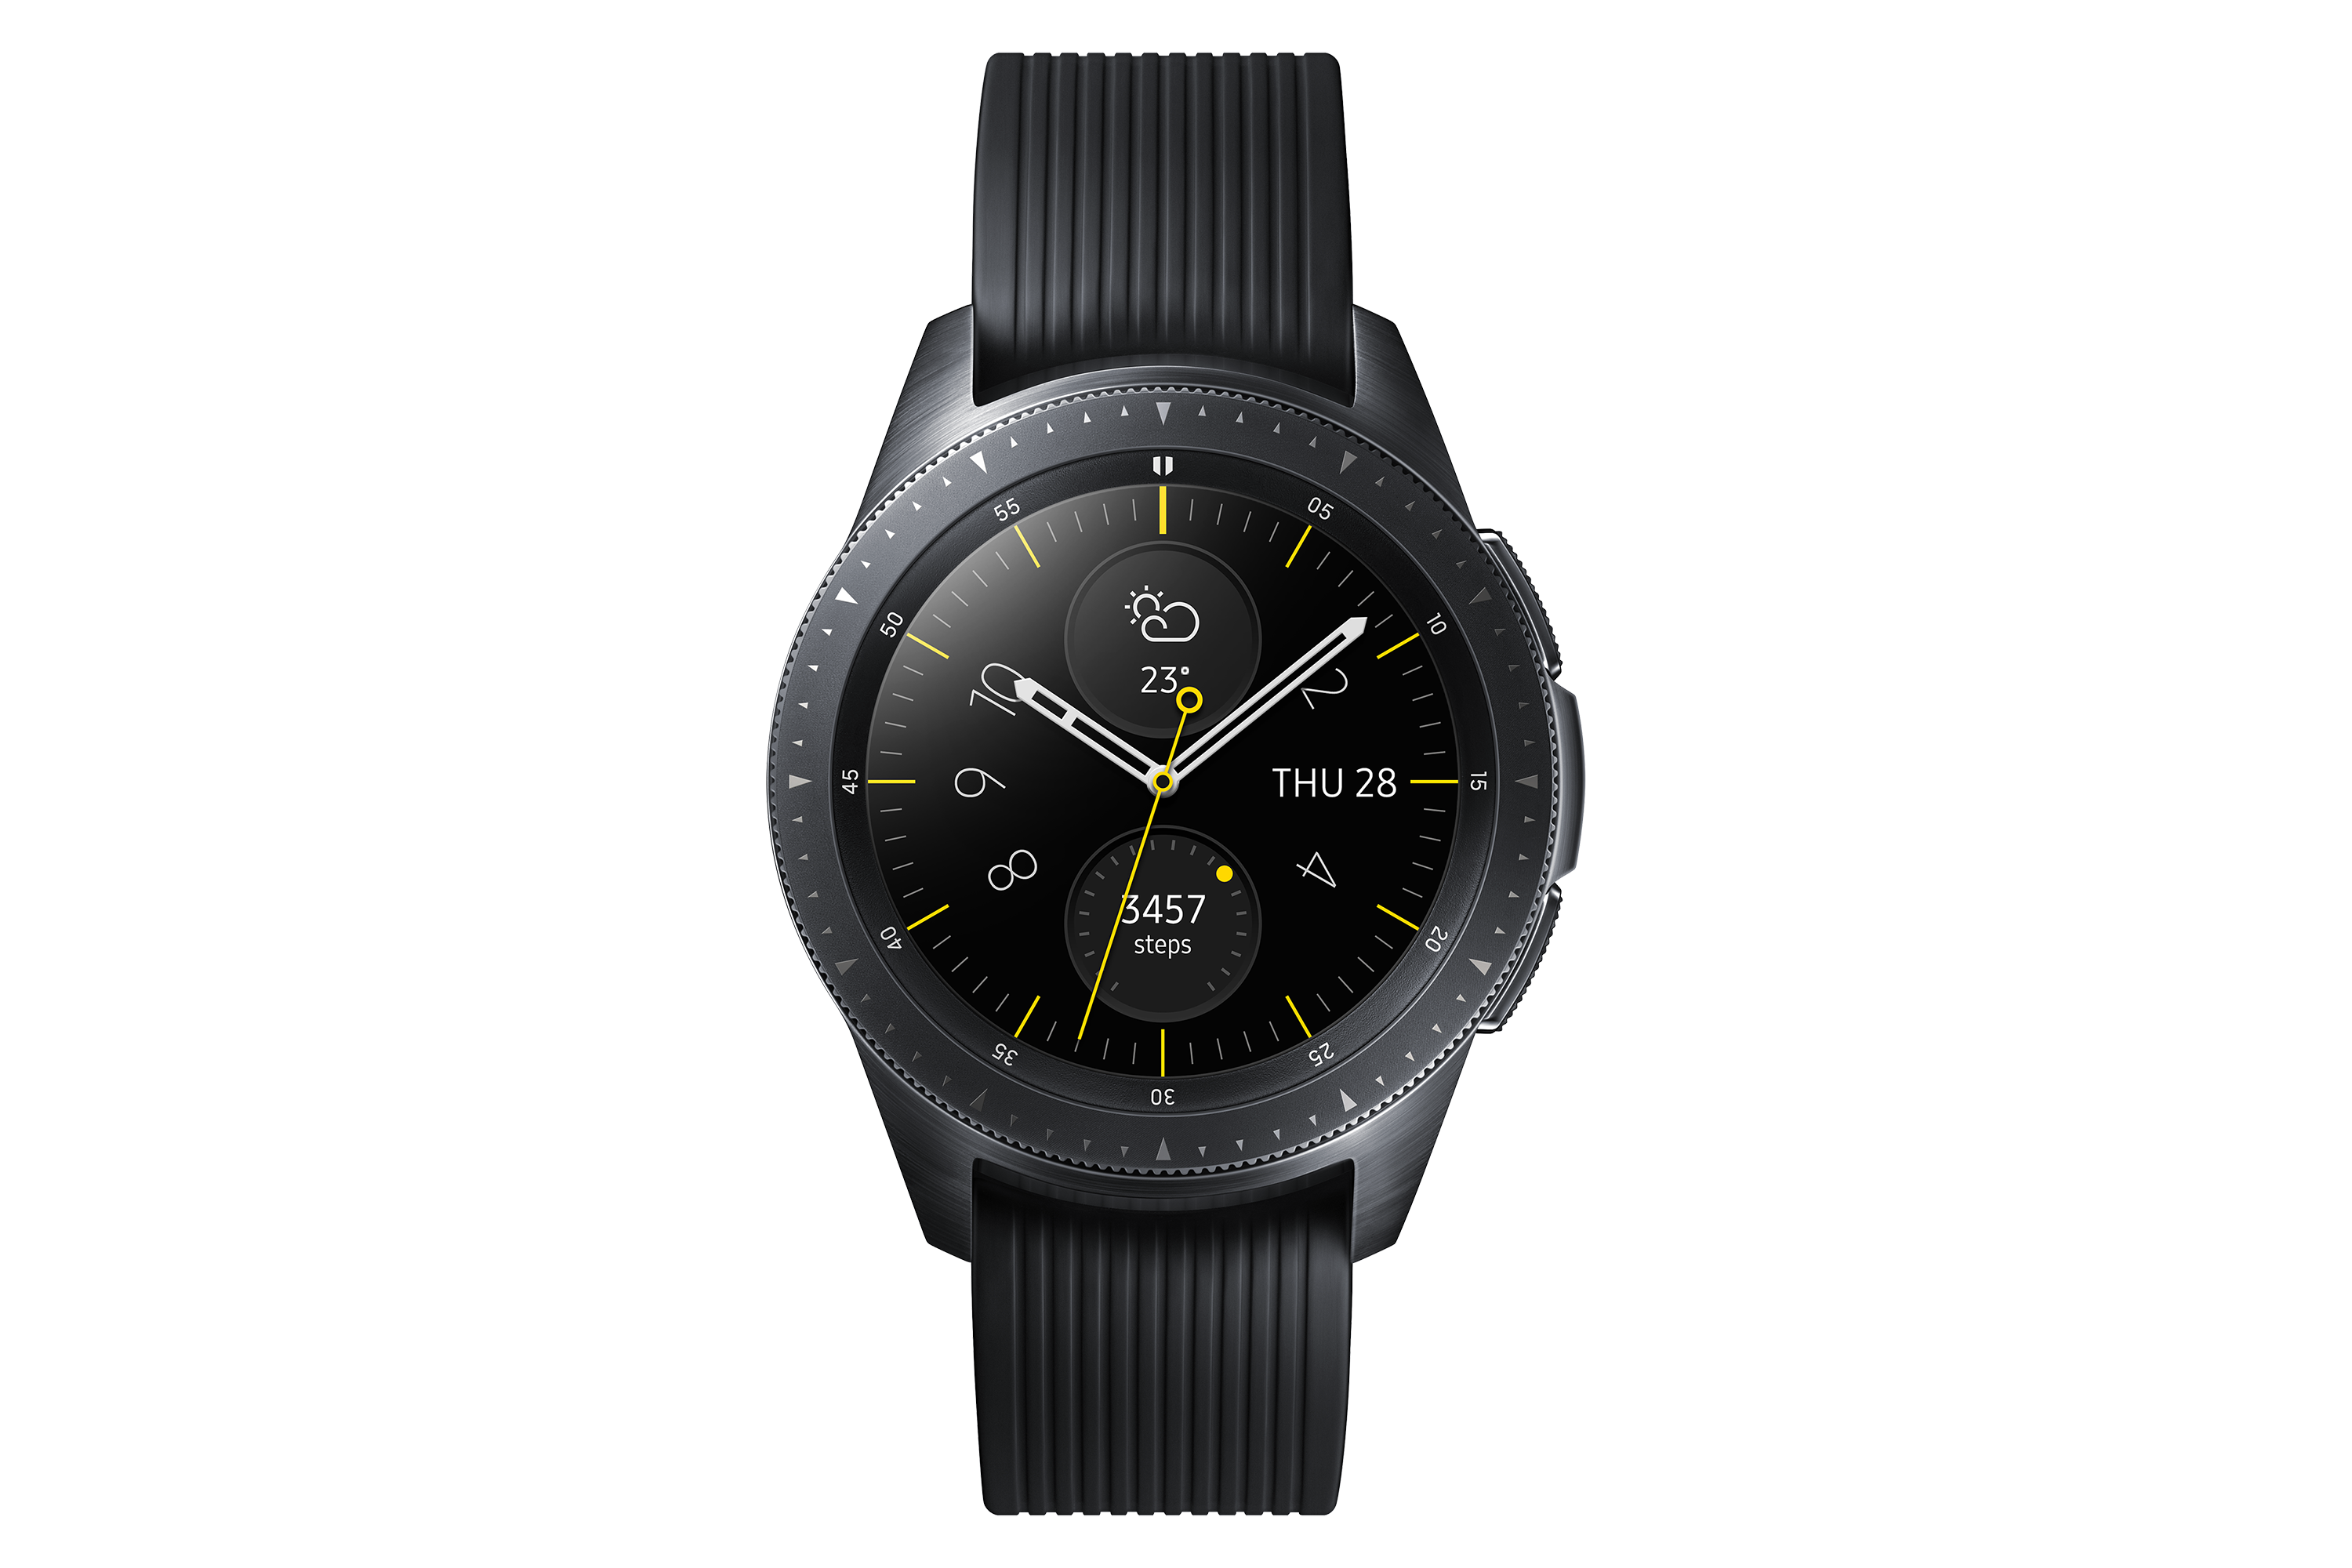 Galaxy Watch BT (42mm)